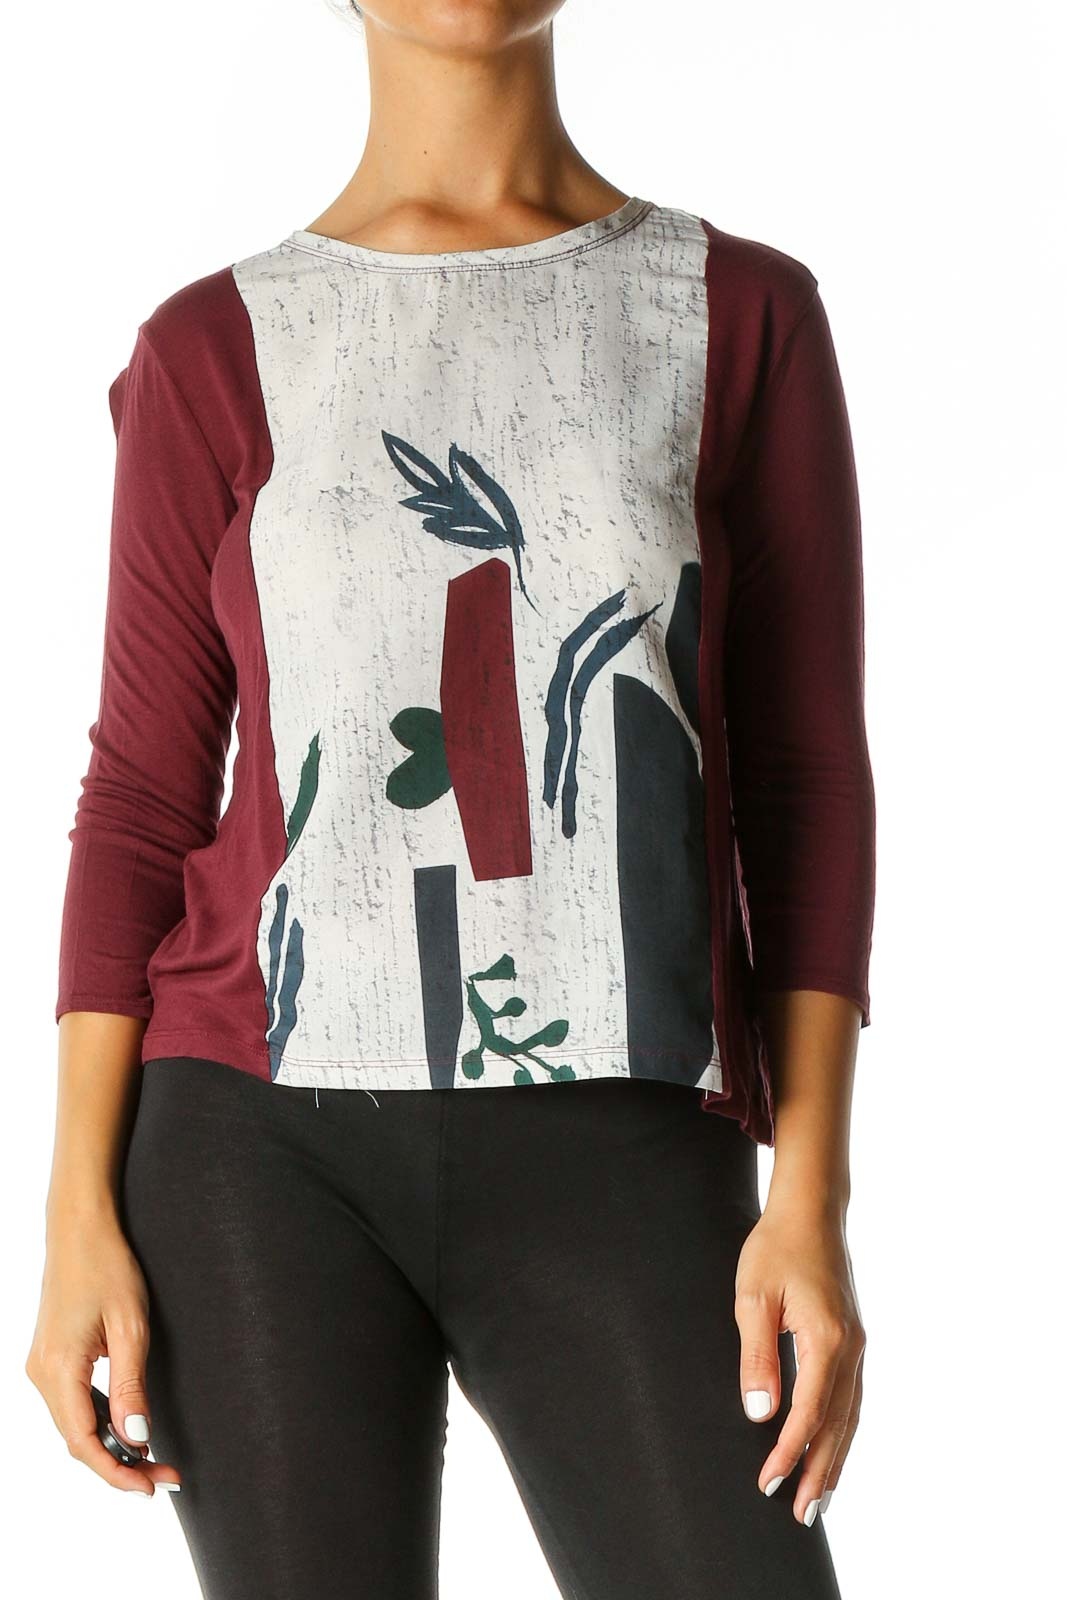 Red Graphic Print Casual Top Front